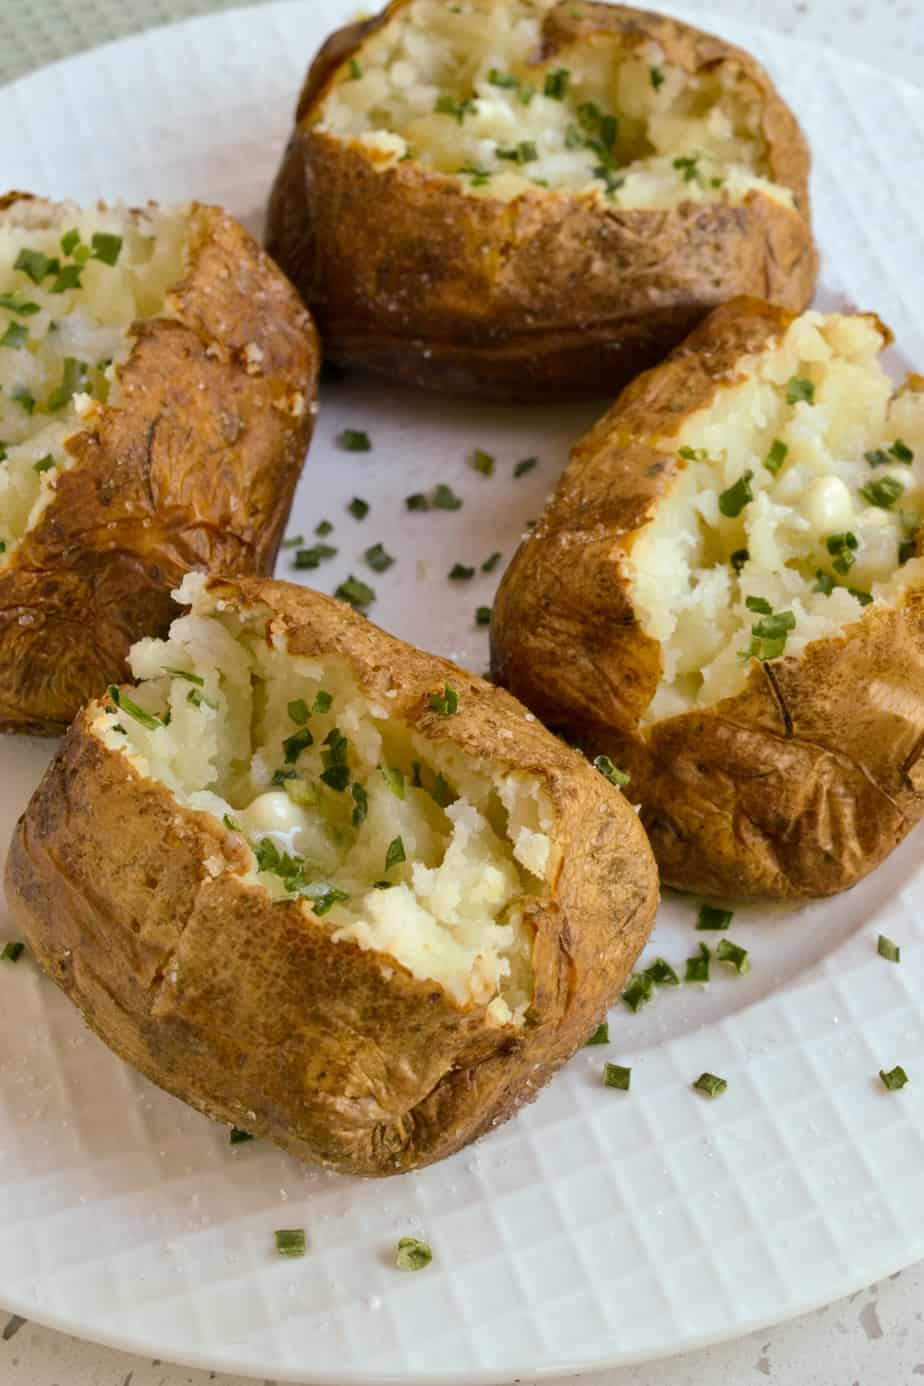 Baked potatoes with fresh creamy butter and chives.